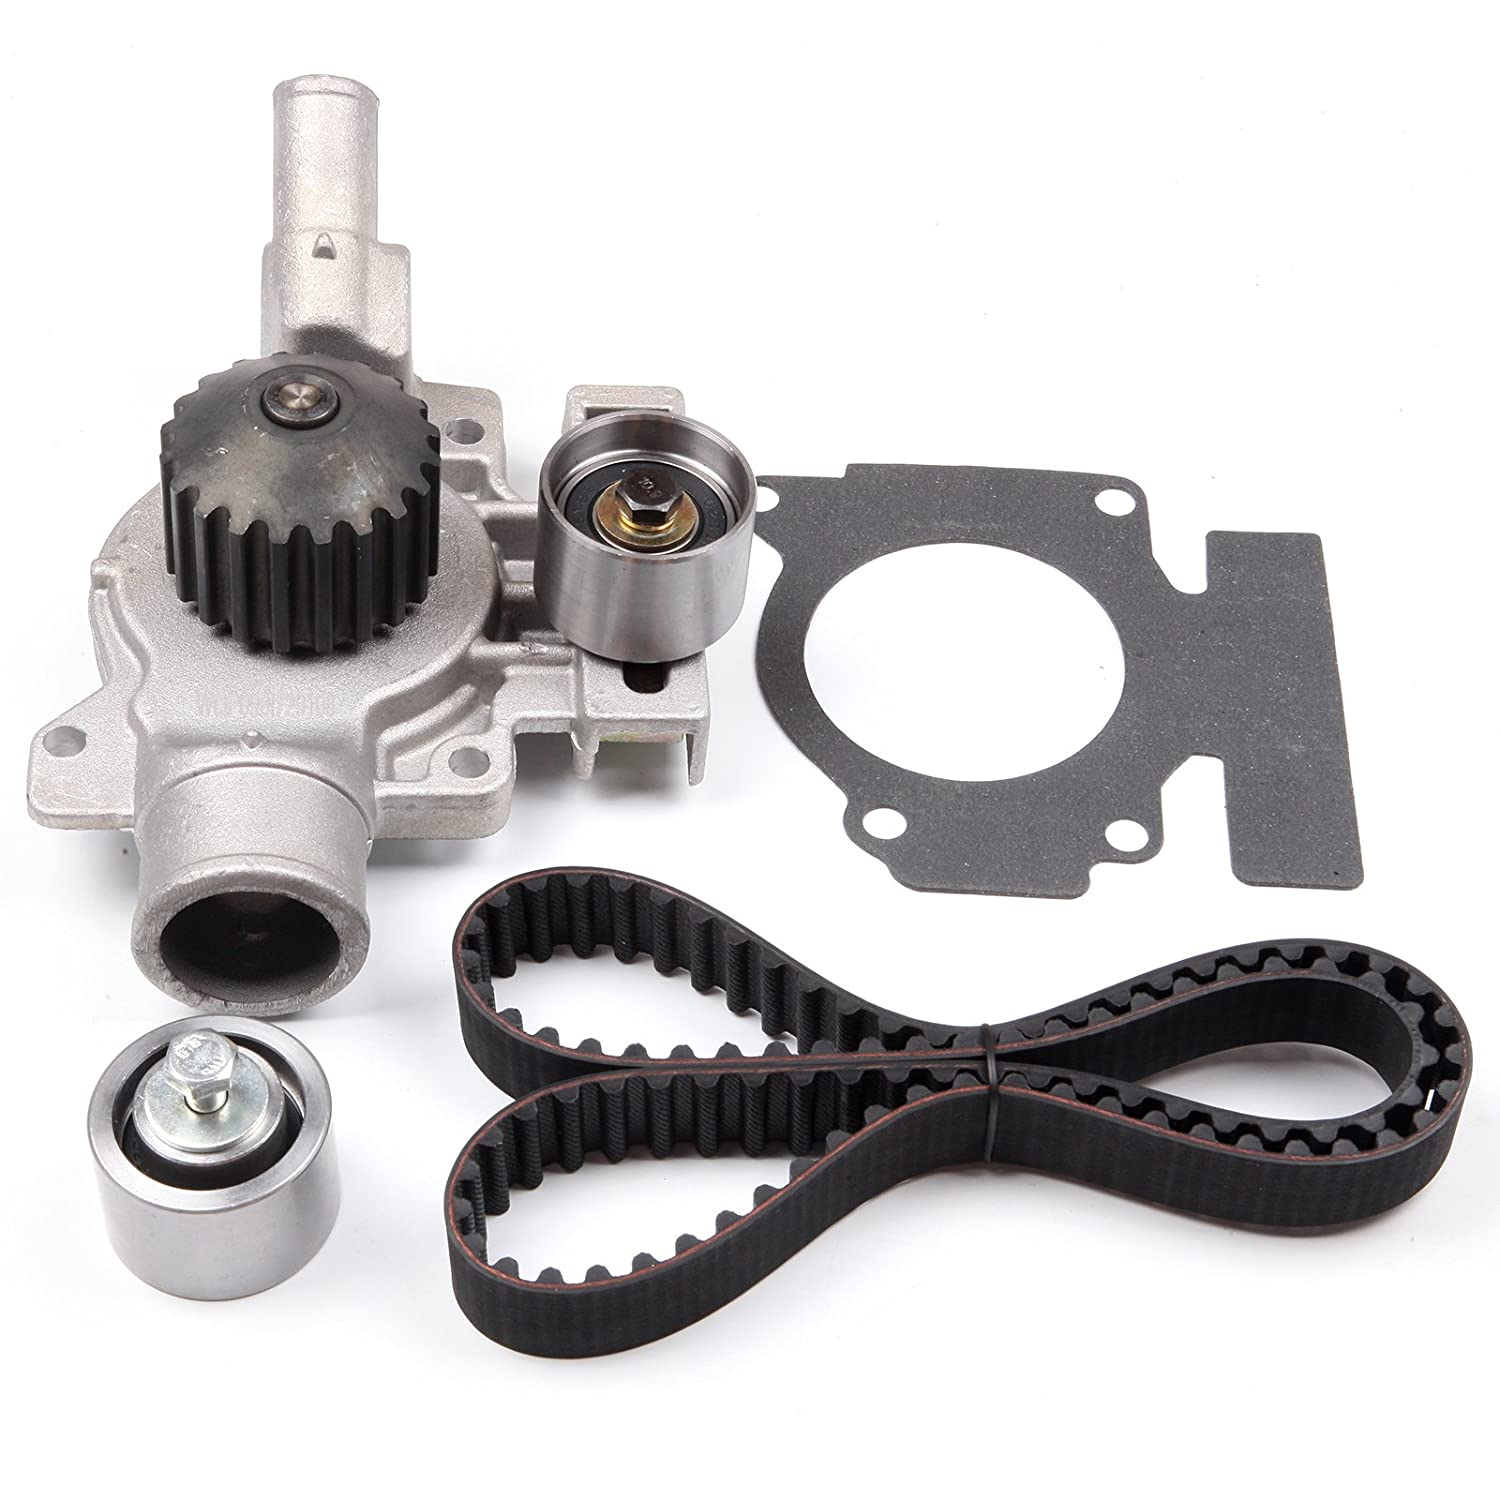 Scitoo Fits 92 96 Ford Escort Tracer 19 L Sohc Timing Jeep Engine Belt Failure Kits Water Pump Set Automotive